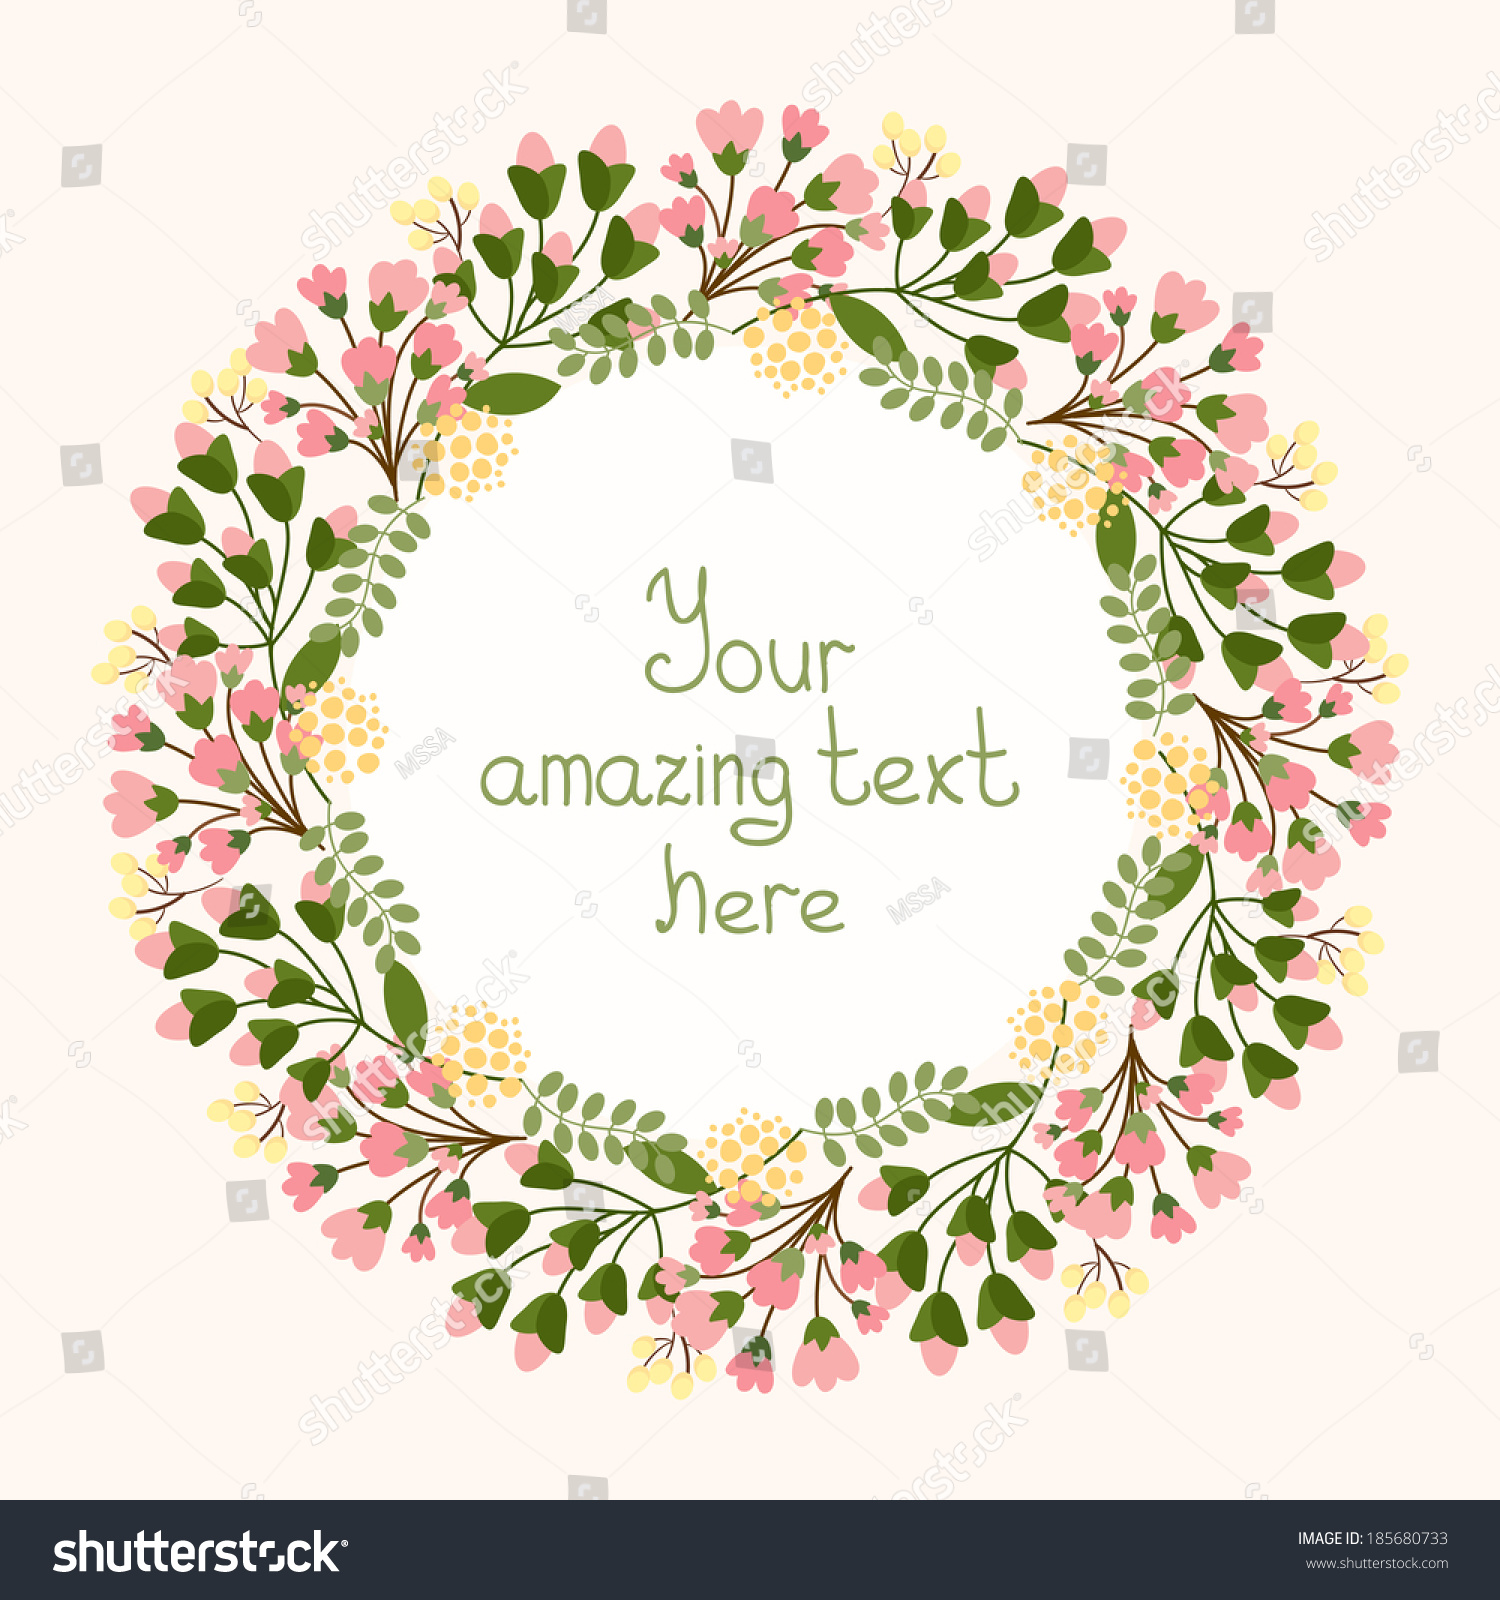 Greeting Card Design With A Circular Floral Wreath Of ...